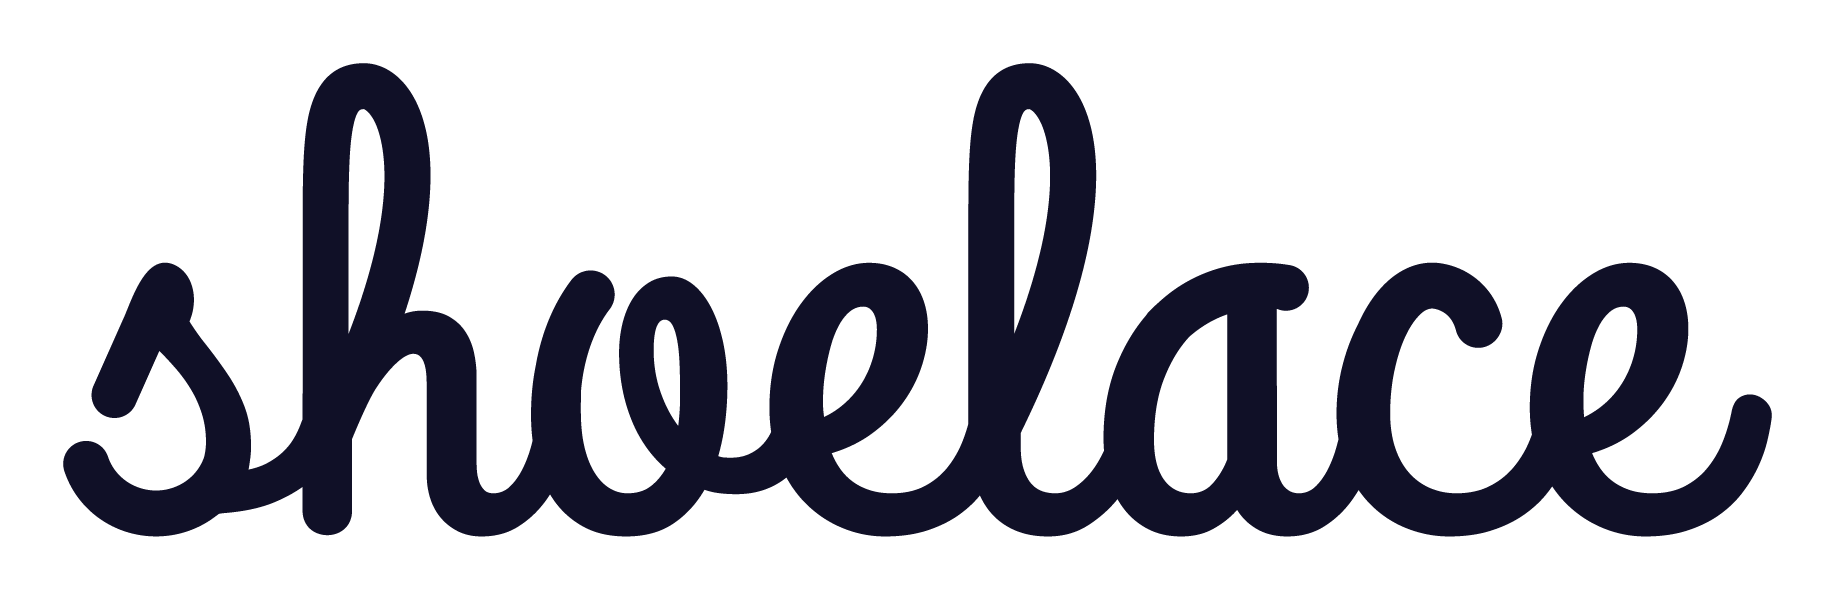 Shoelace_logo_bootcamp